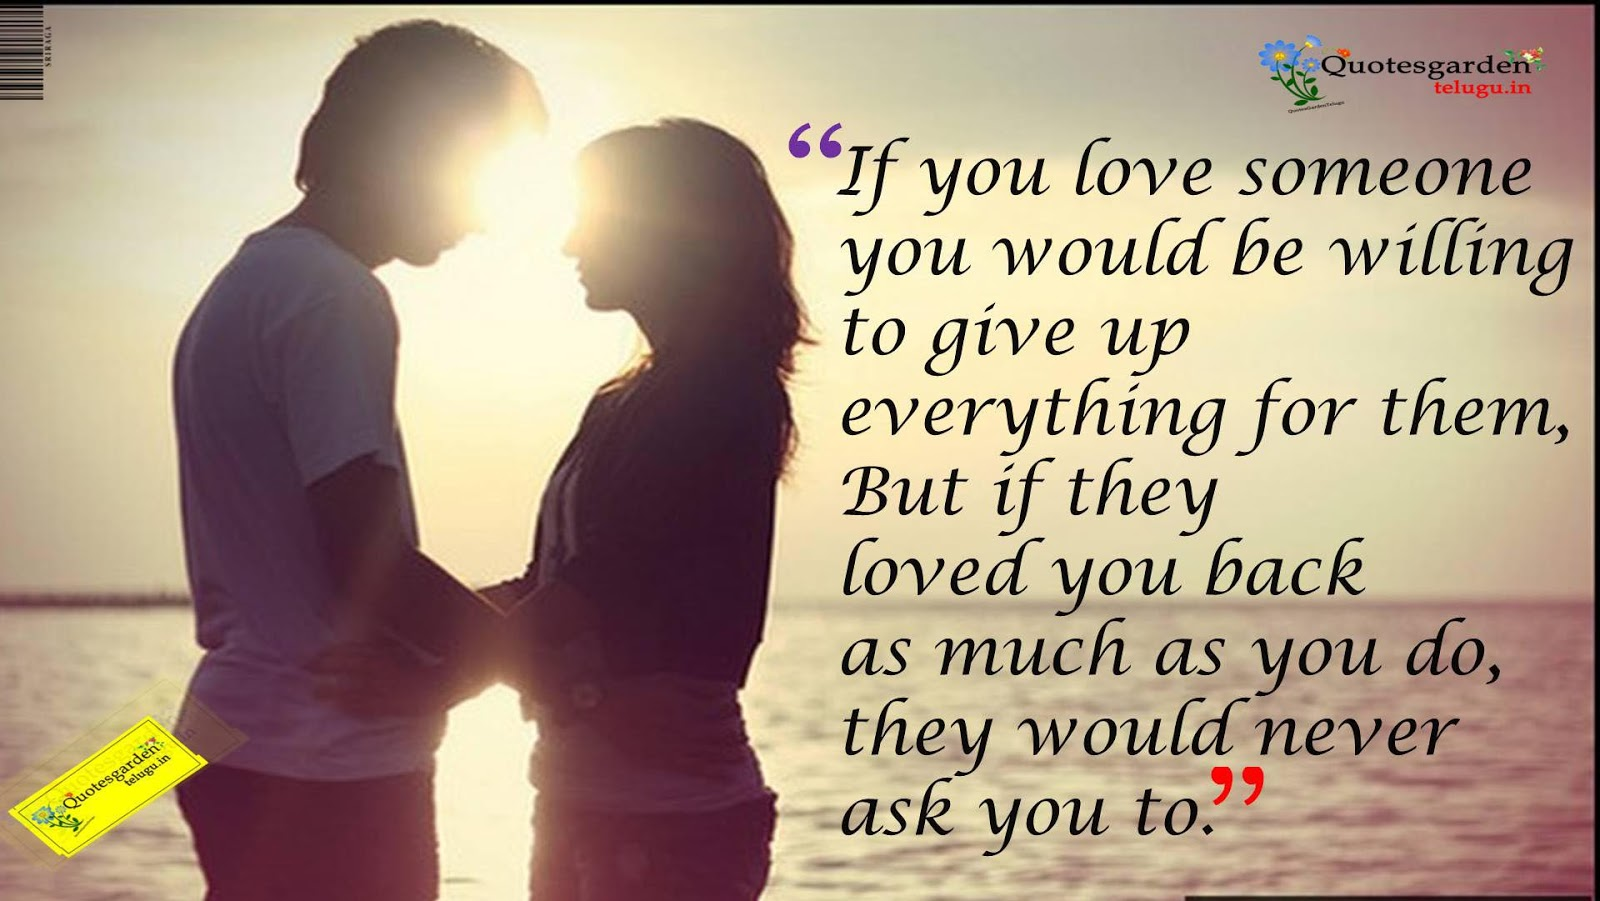 Love Wallpaper With Heart Touching Quotes : Best Heart touching love quotes with hd wallpapers 685 QUOTES GARDEN TELUGU Telugu Quotes ...